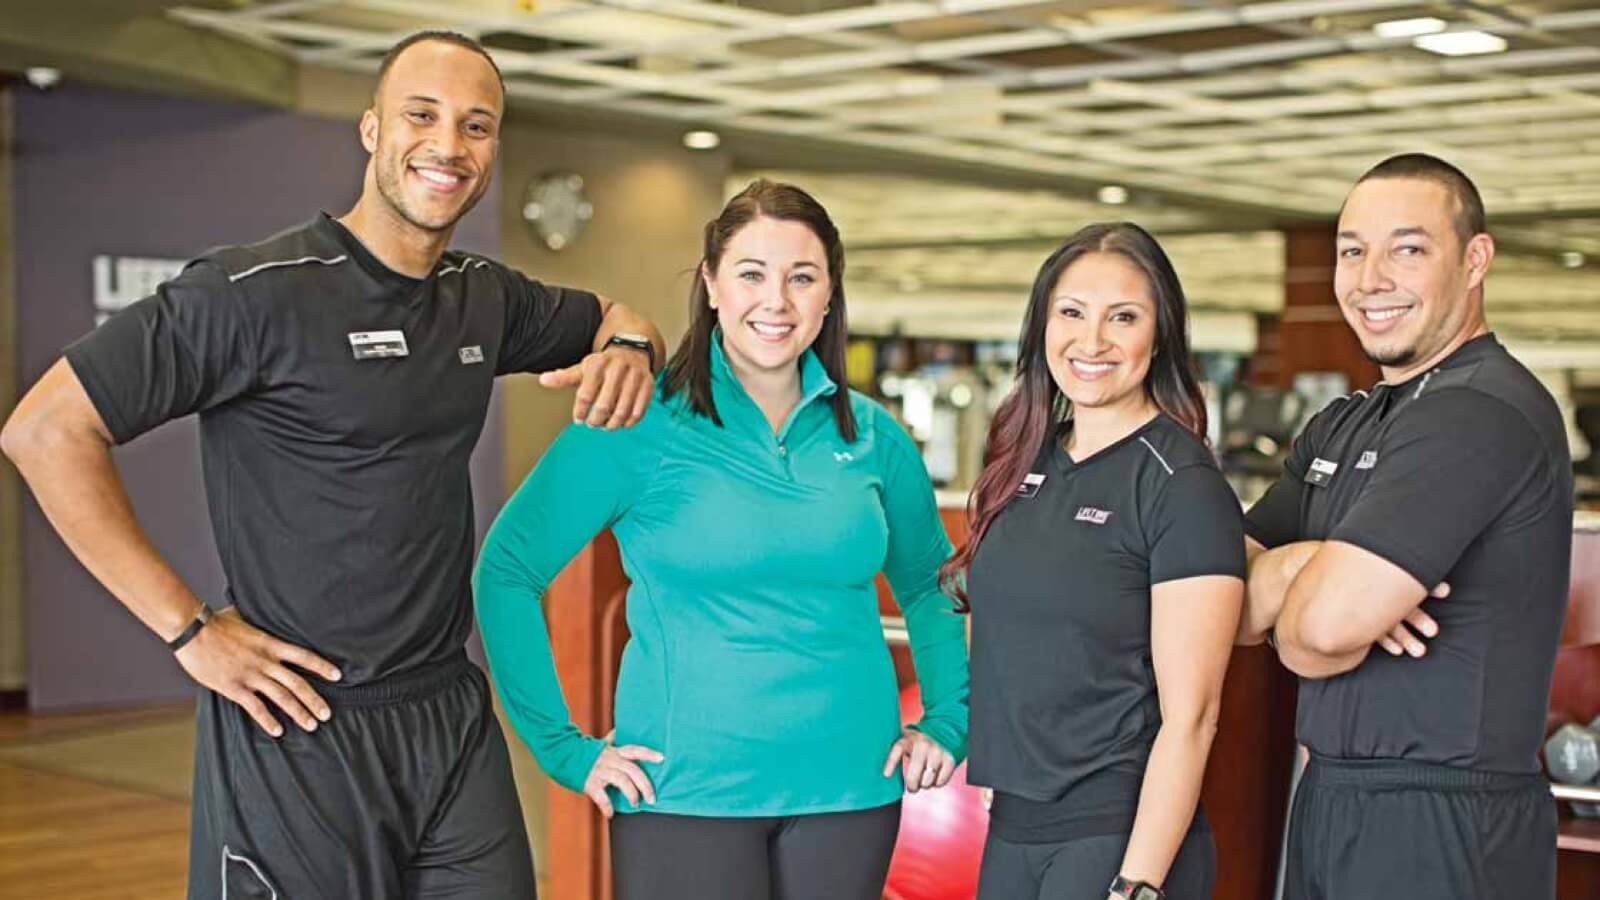 Four Life Time personal trainers stand together smiling